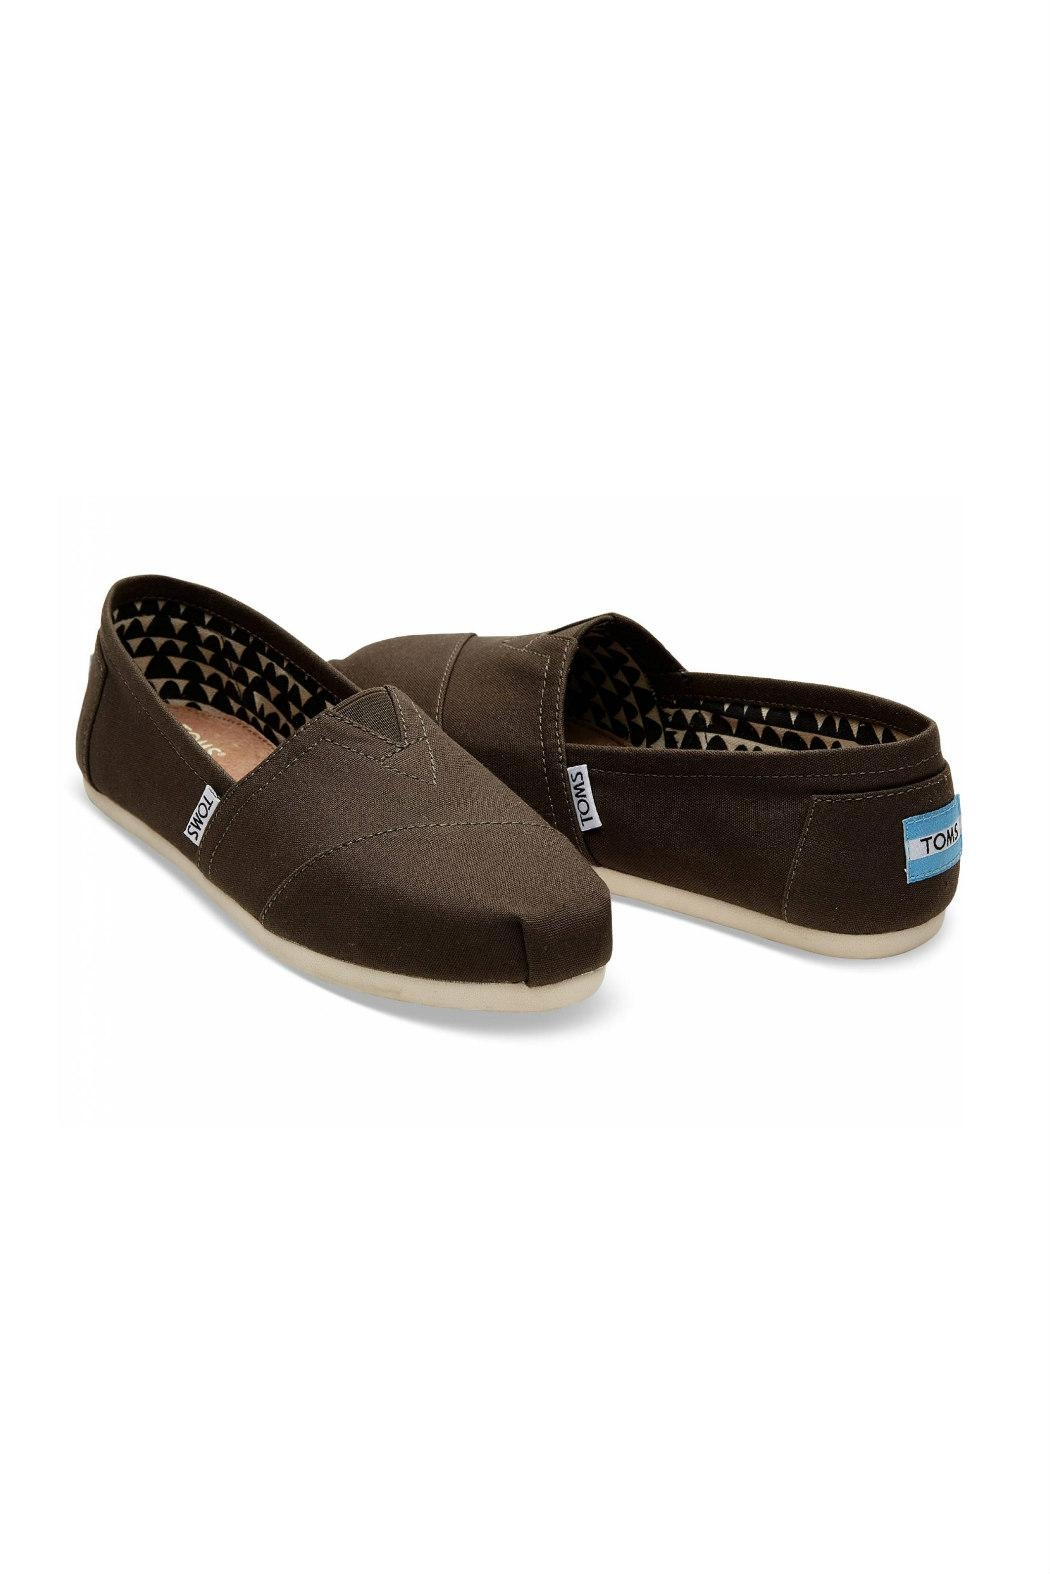 TOMS Classic Canvas Alpergata Shoes - Front Full Image